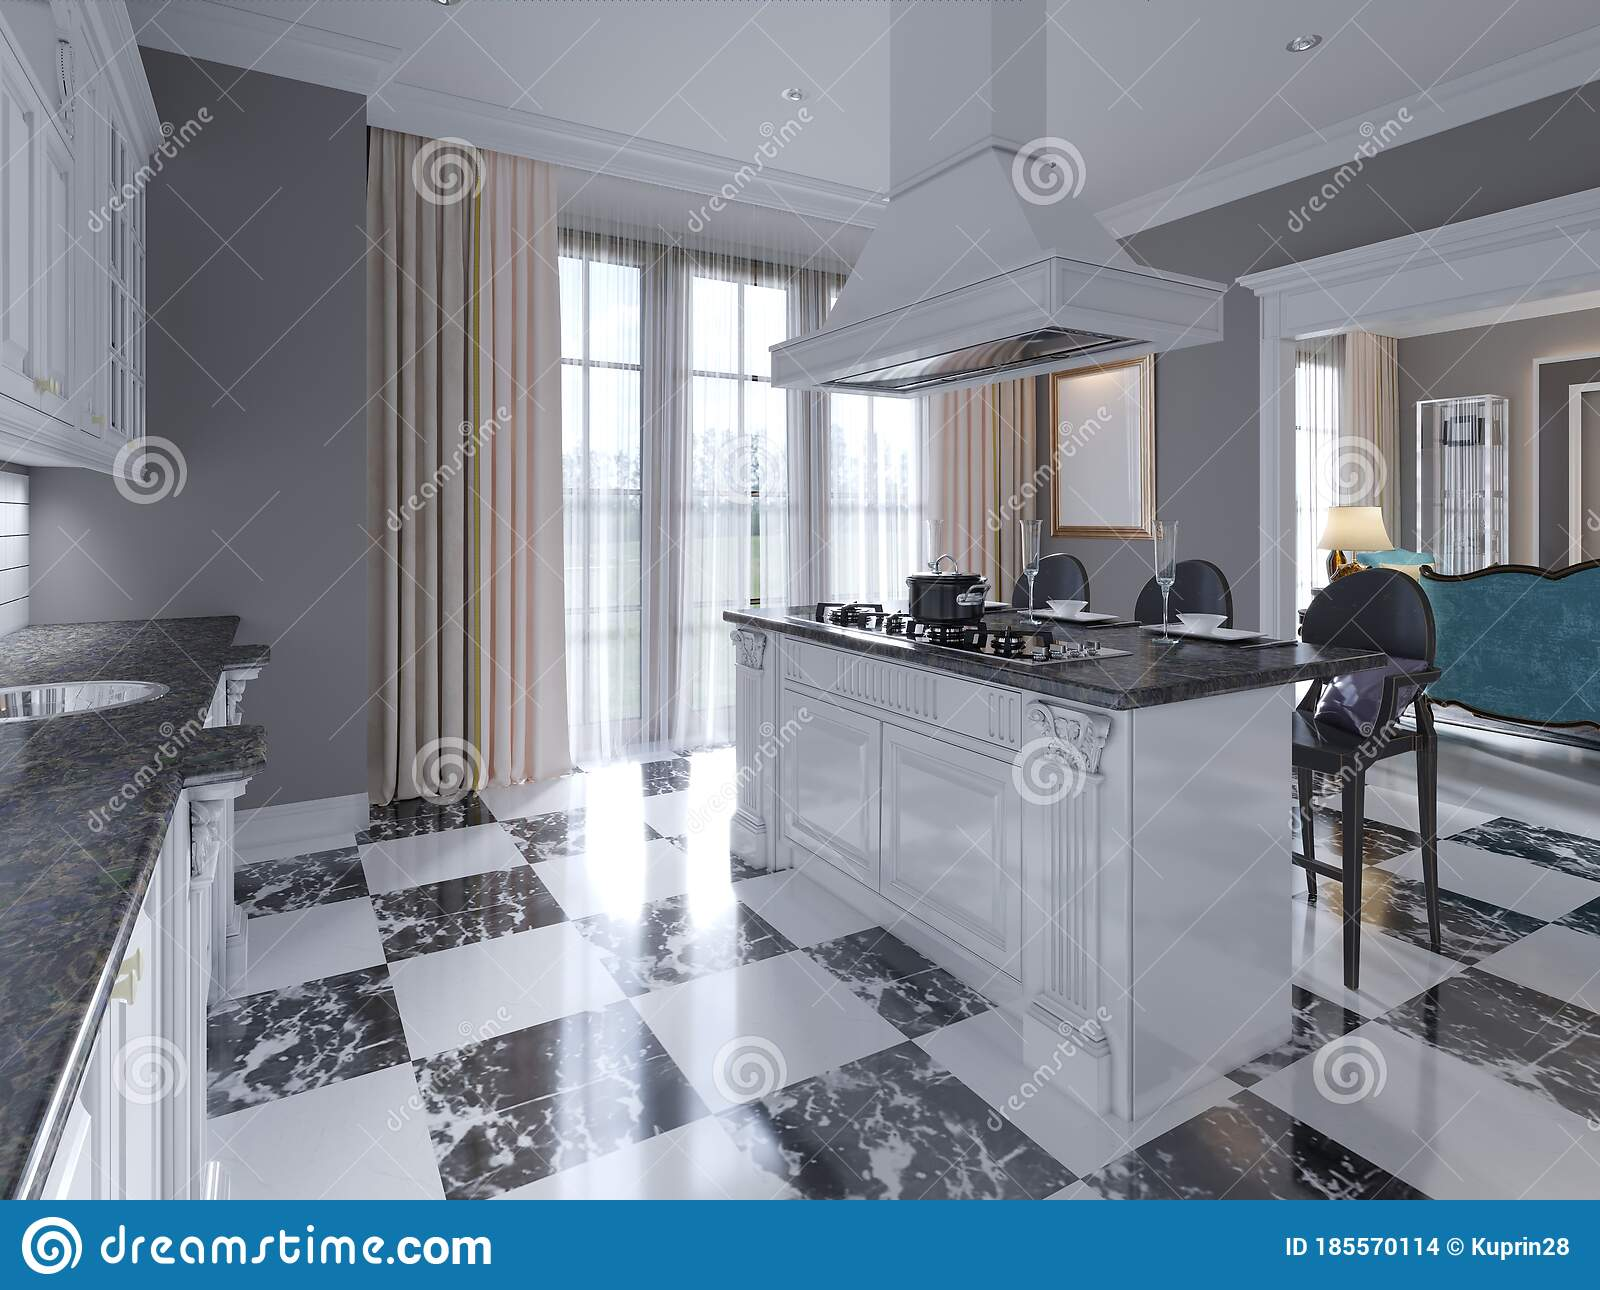 Modern Art Deco Style Kitchen With Trendy Black And White Furniture And A Chess Marble Floor Kitchen Island Bar Stool Stock Illustration Illustration Of Ceramic Fashion 185570114